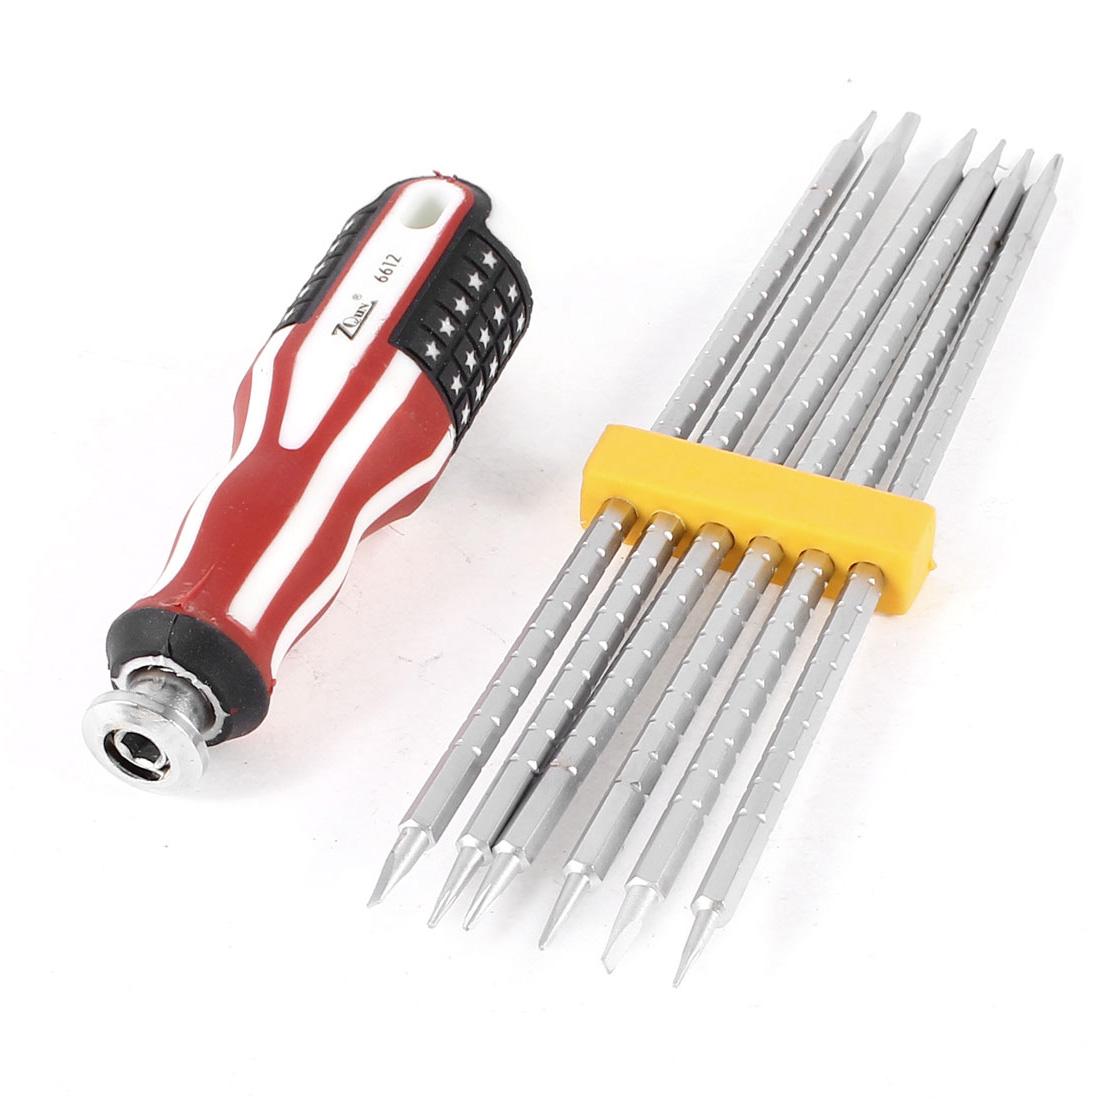 Hand Tools Star Pattern Grip Slotted Phillips Torx Screwdriver 6 in 1 Set